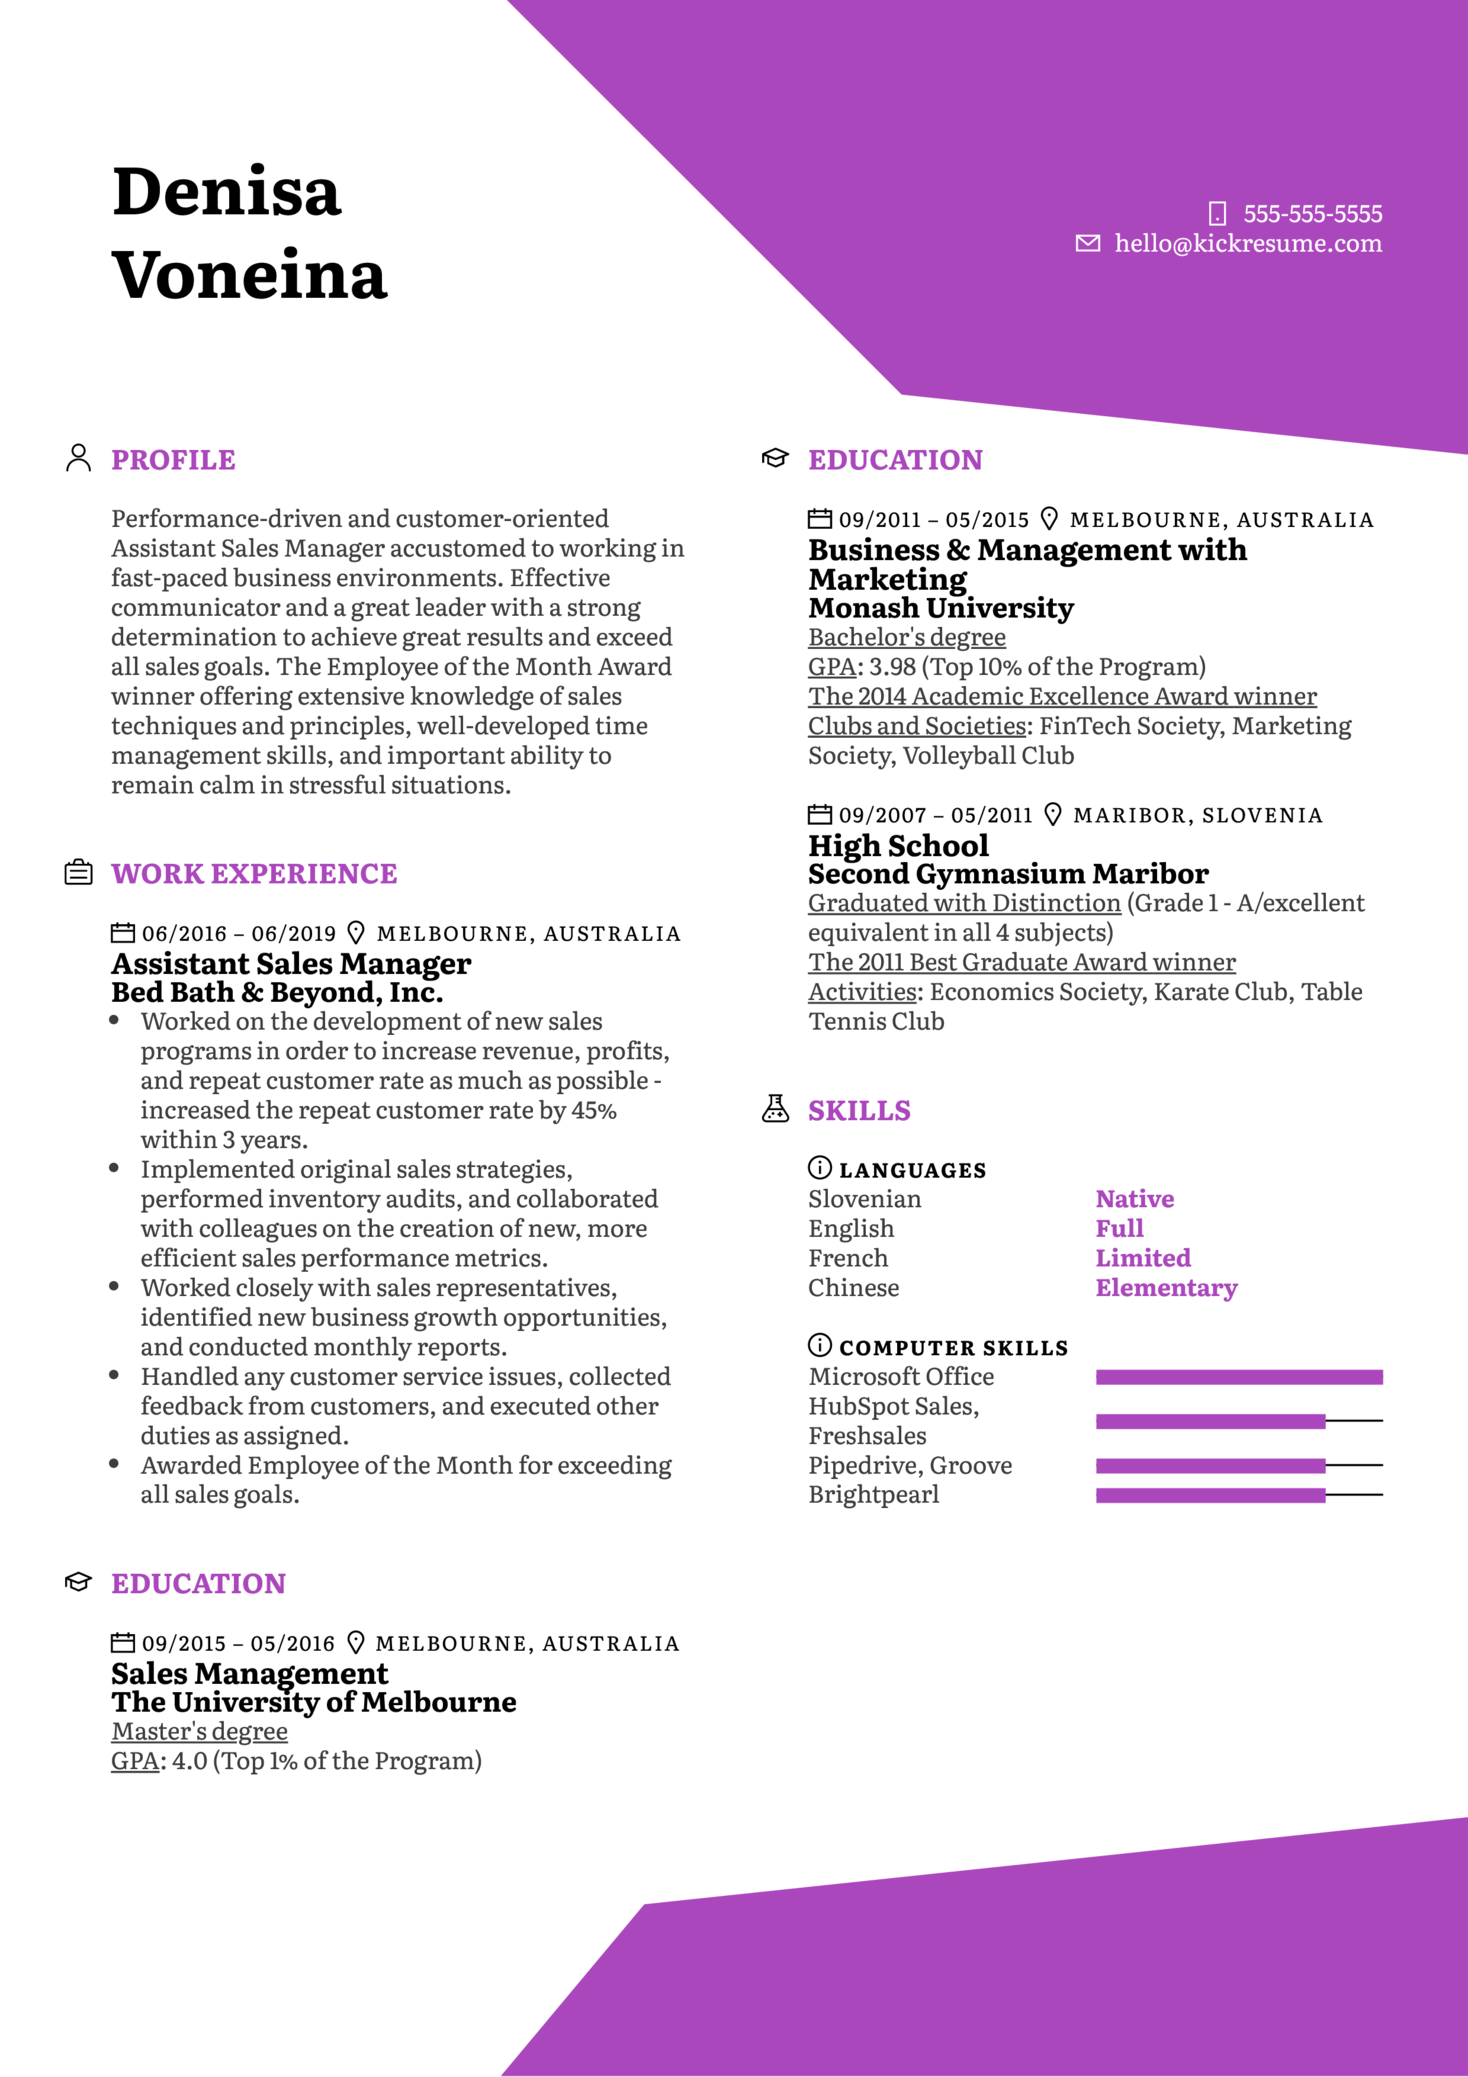 Assistant Sales Manager Resume Example (Teil 1)